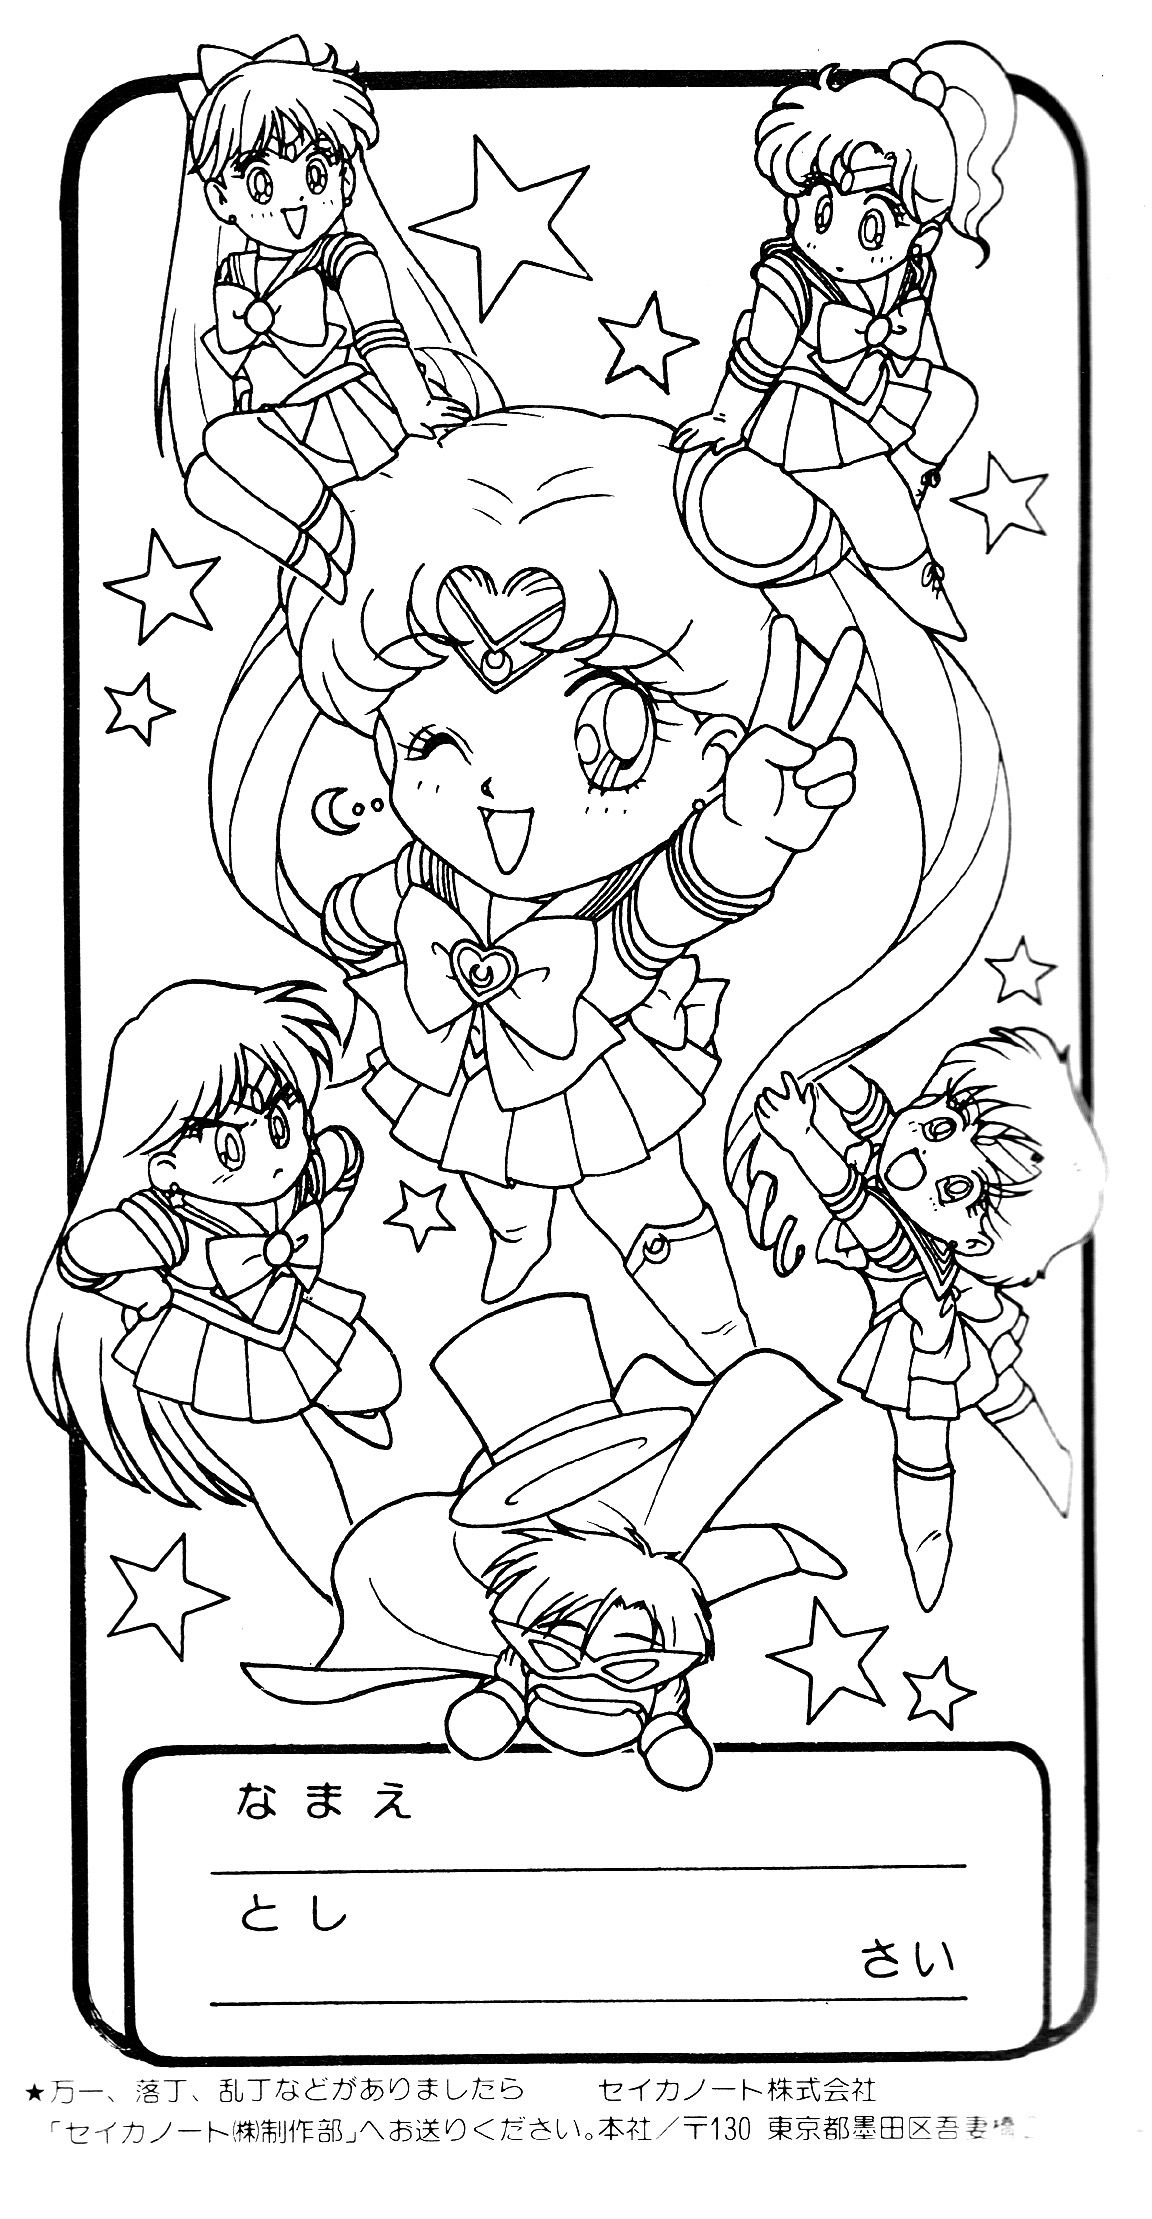 SD004 1152—2219 Coloring pages Pinterest